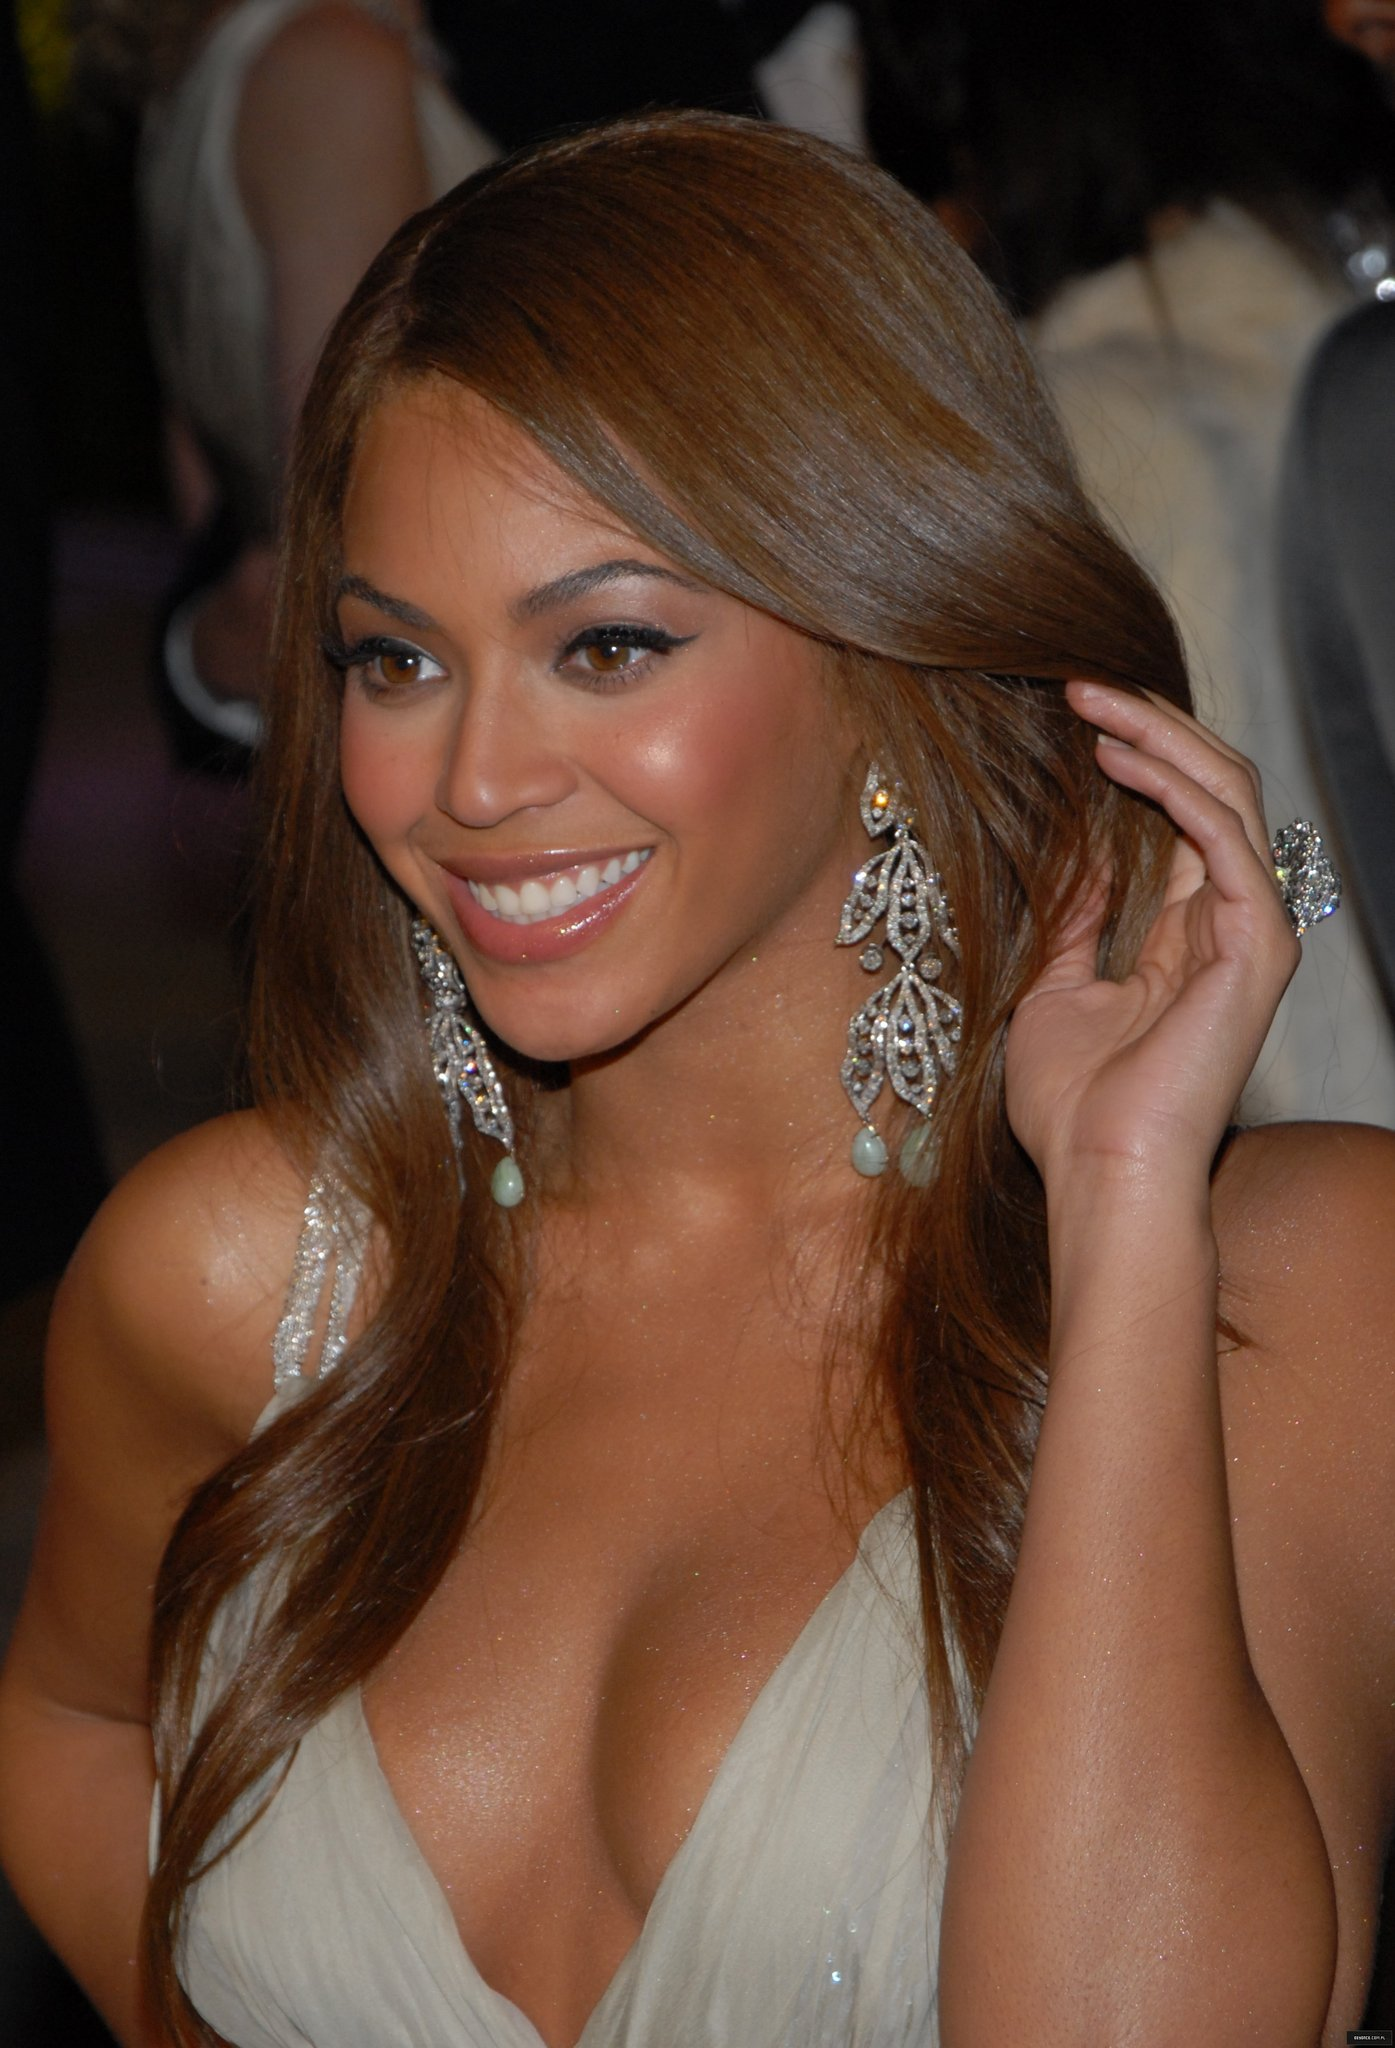 Beyoncé Giselle Hot photo gallery